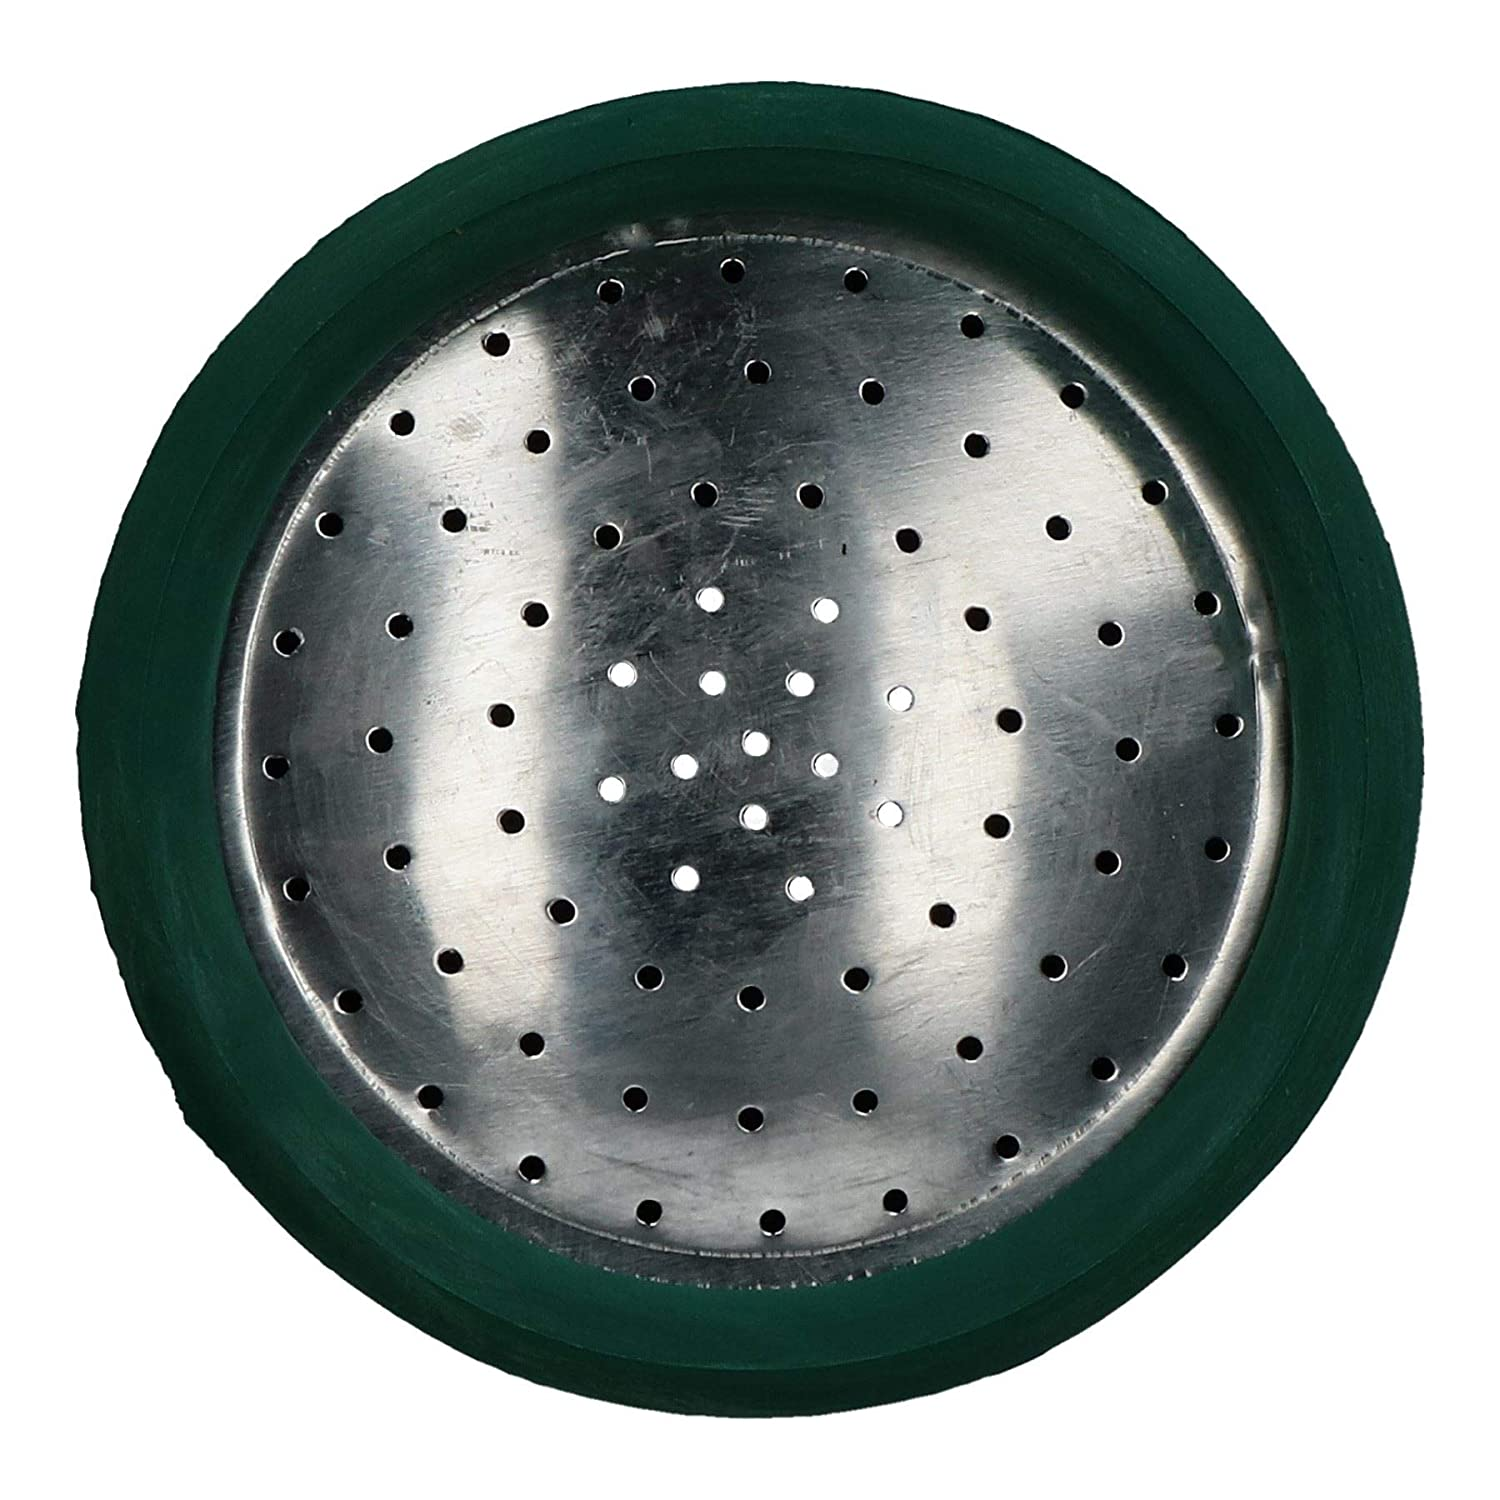 AB Tools-Toolzone Water Can Head Rose Garden Plants Round Sprinkler Plastic Rain Effect Holes